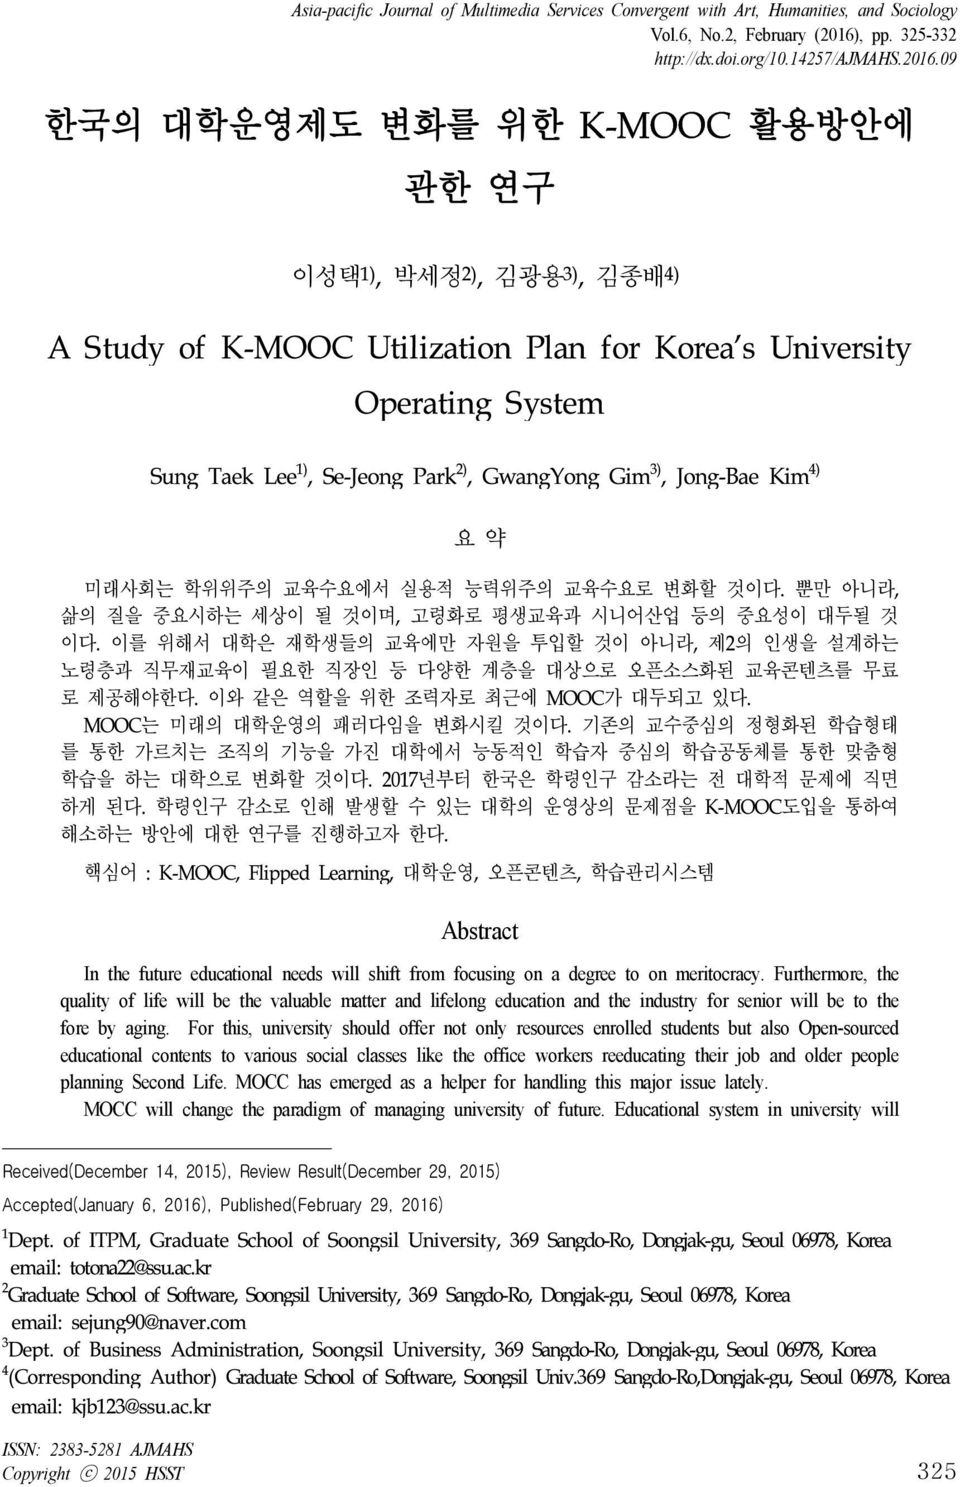 09 한국의 대학운영제도 변화를 위한 K-MOOC 활용방안에 관한 연구 이성택 1), 박세정 2), 김광용 3), 김종배 4) A Study of K-MOOC Utilization Plan for Korea's University Operating System Sung Taek Lee 1), Se-Jeong Park 2), GwangYong Gim 3),